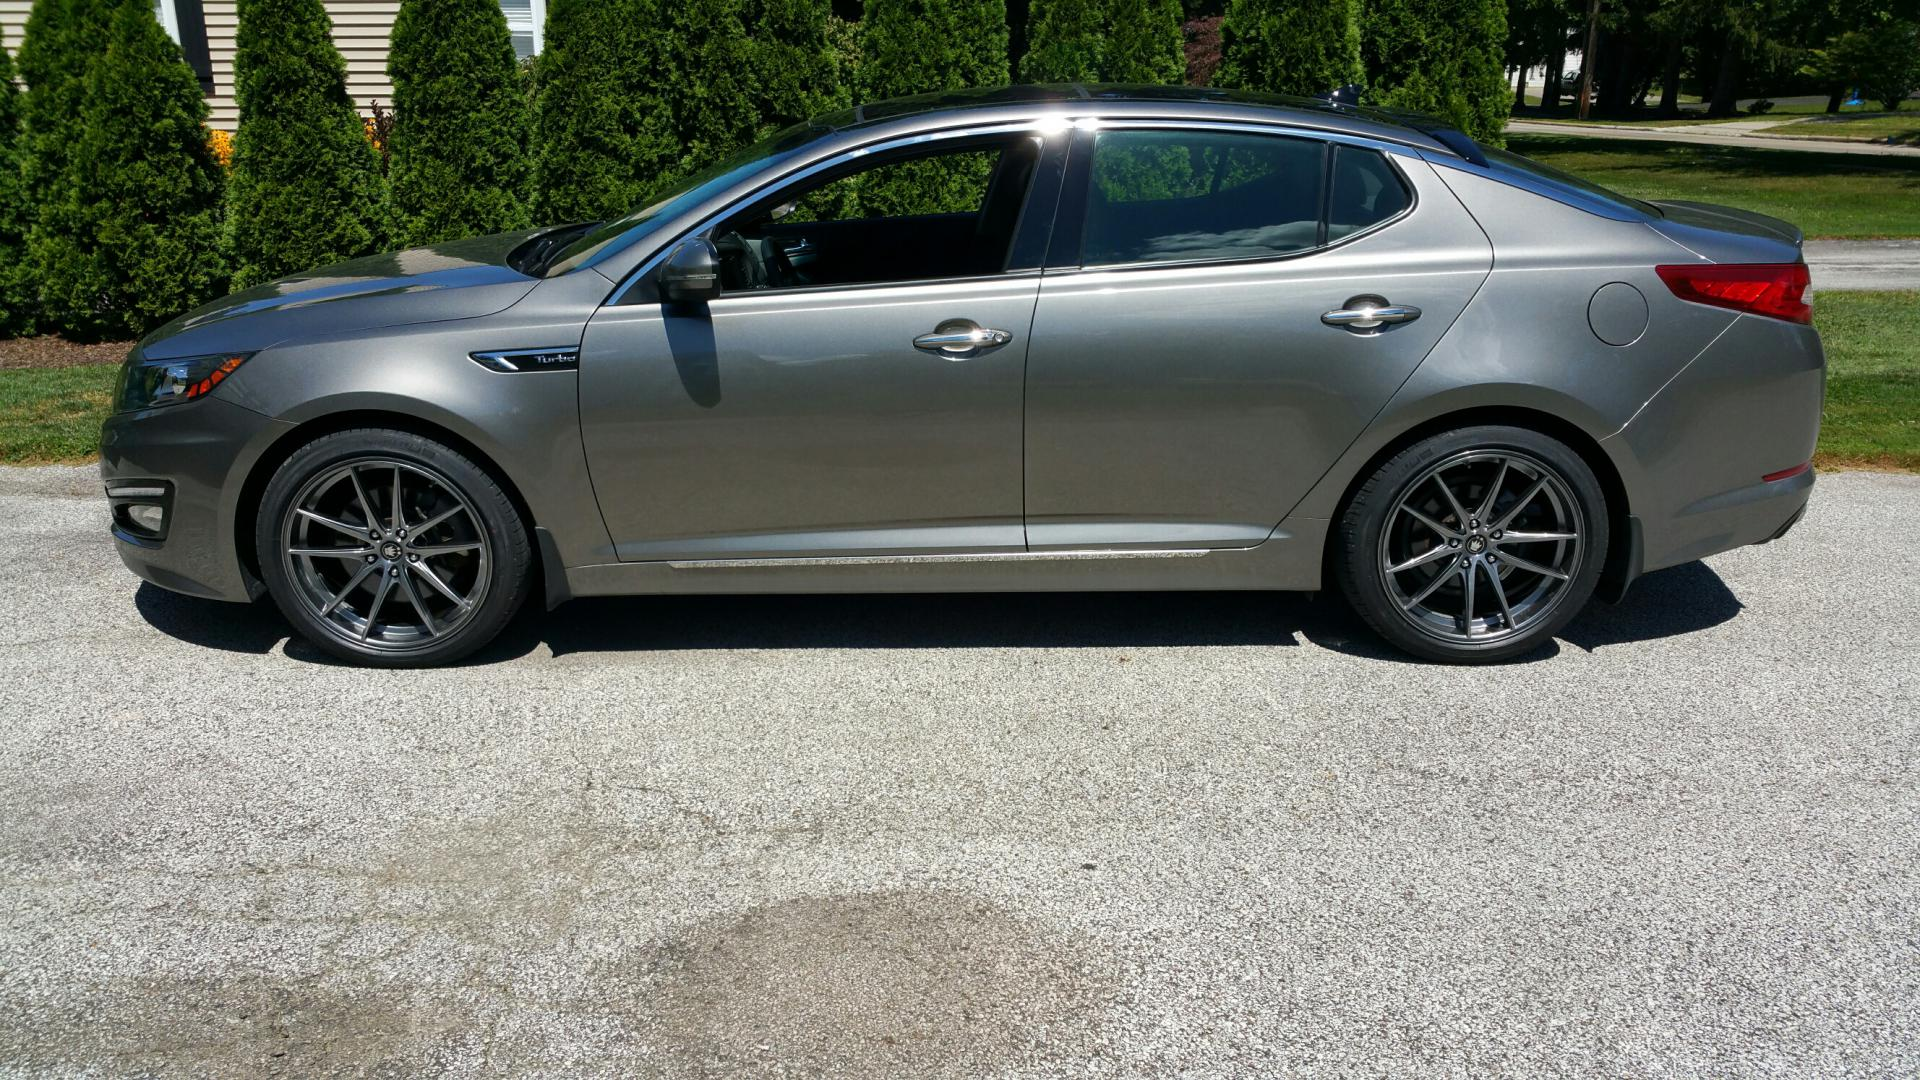 2012 Kia Optima Custom >> Kia Optima custom wheels Konig Oversteer 19x8.5, ET +45, tire size 235/40 R19. x ET